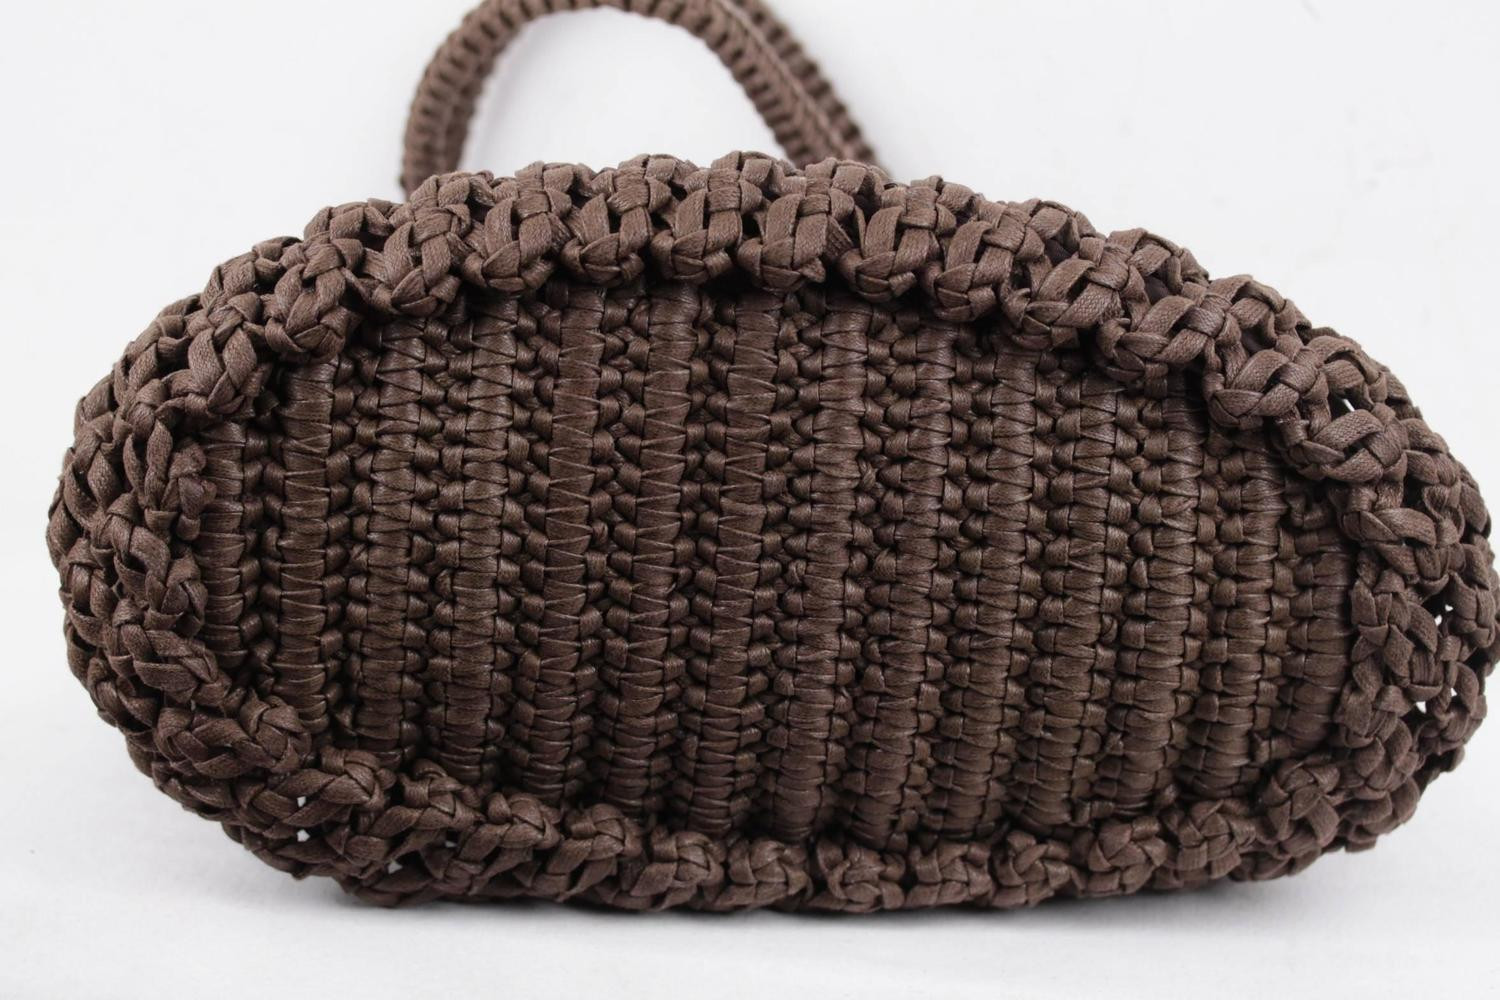 Crochet Bags for Sale Fresh David and Scotti Brown Crochet tote Shoulder Bag Shopping Of Awesome 42 Models Crochet Bags for Sale